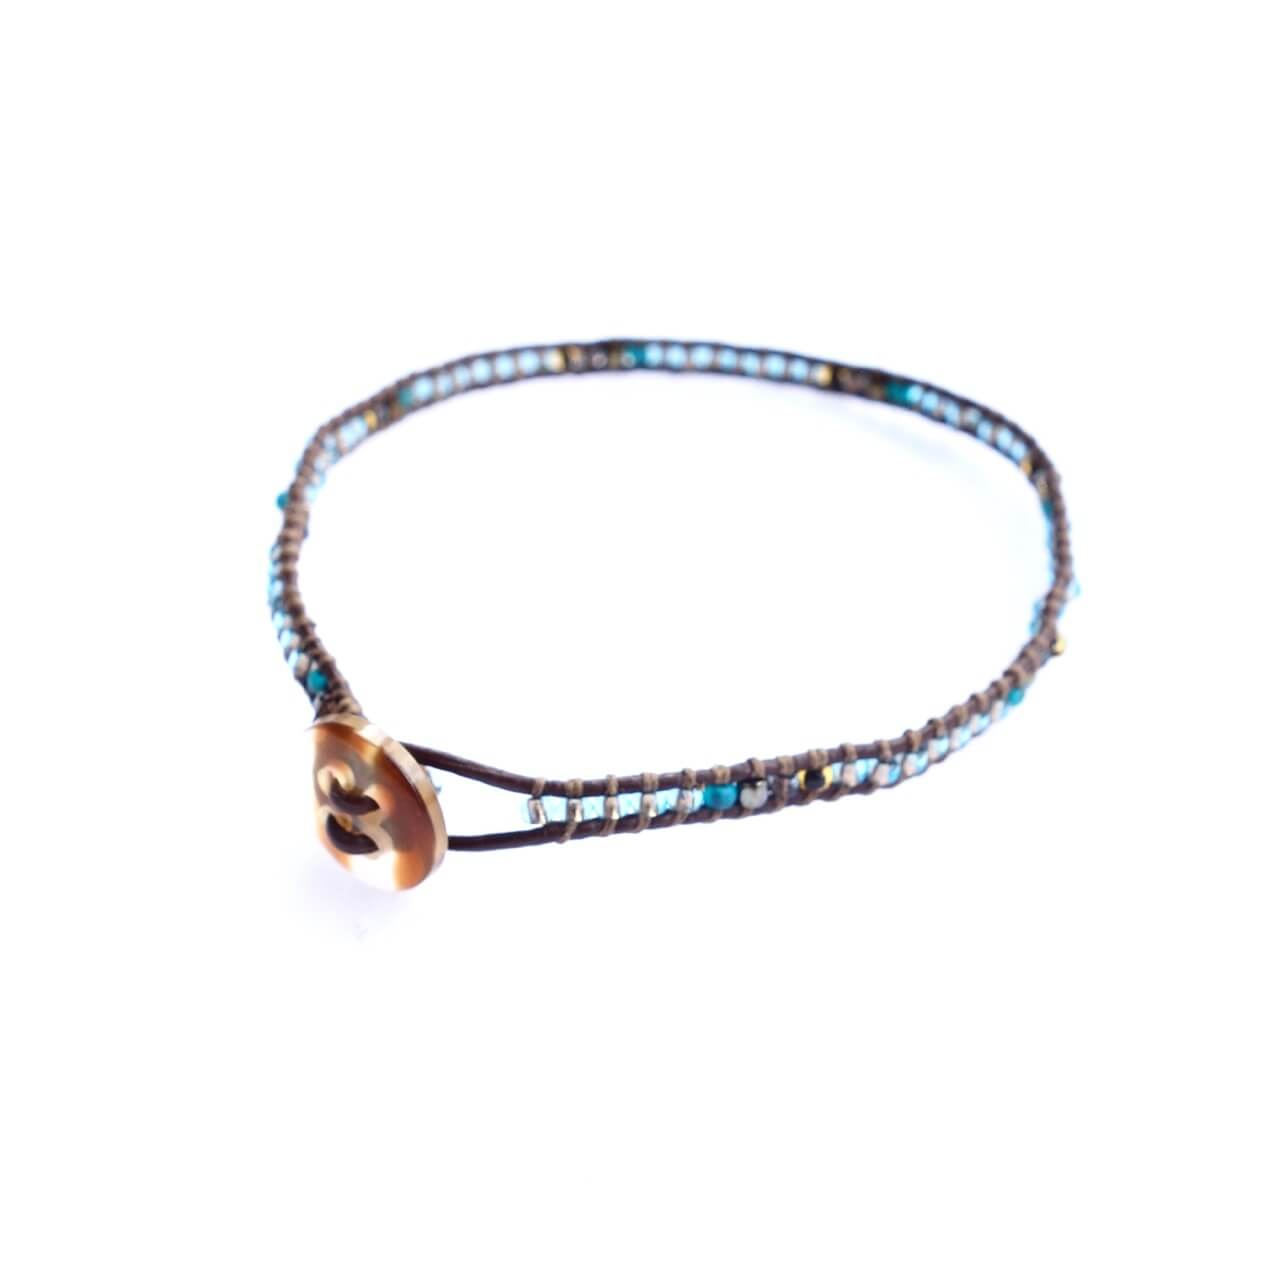 Altiplano Thin Leather Beaded Bracelet